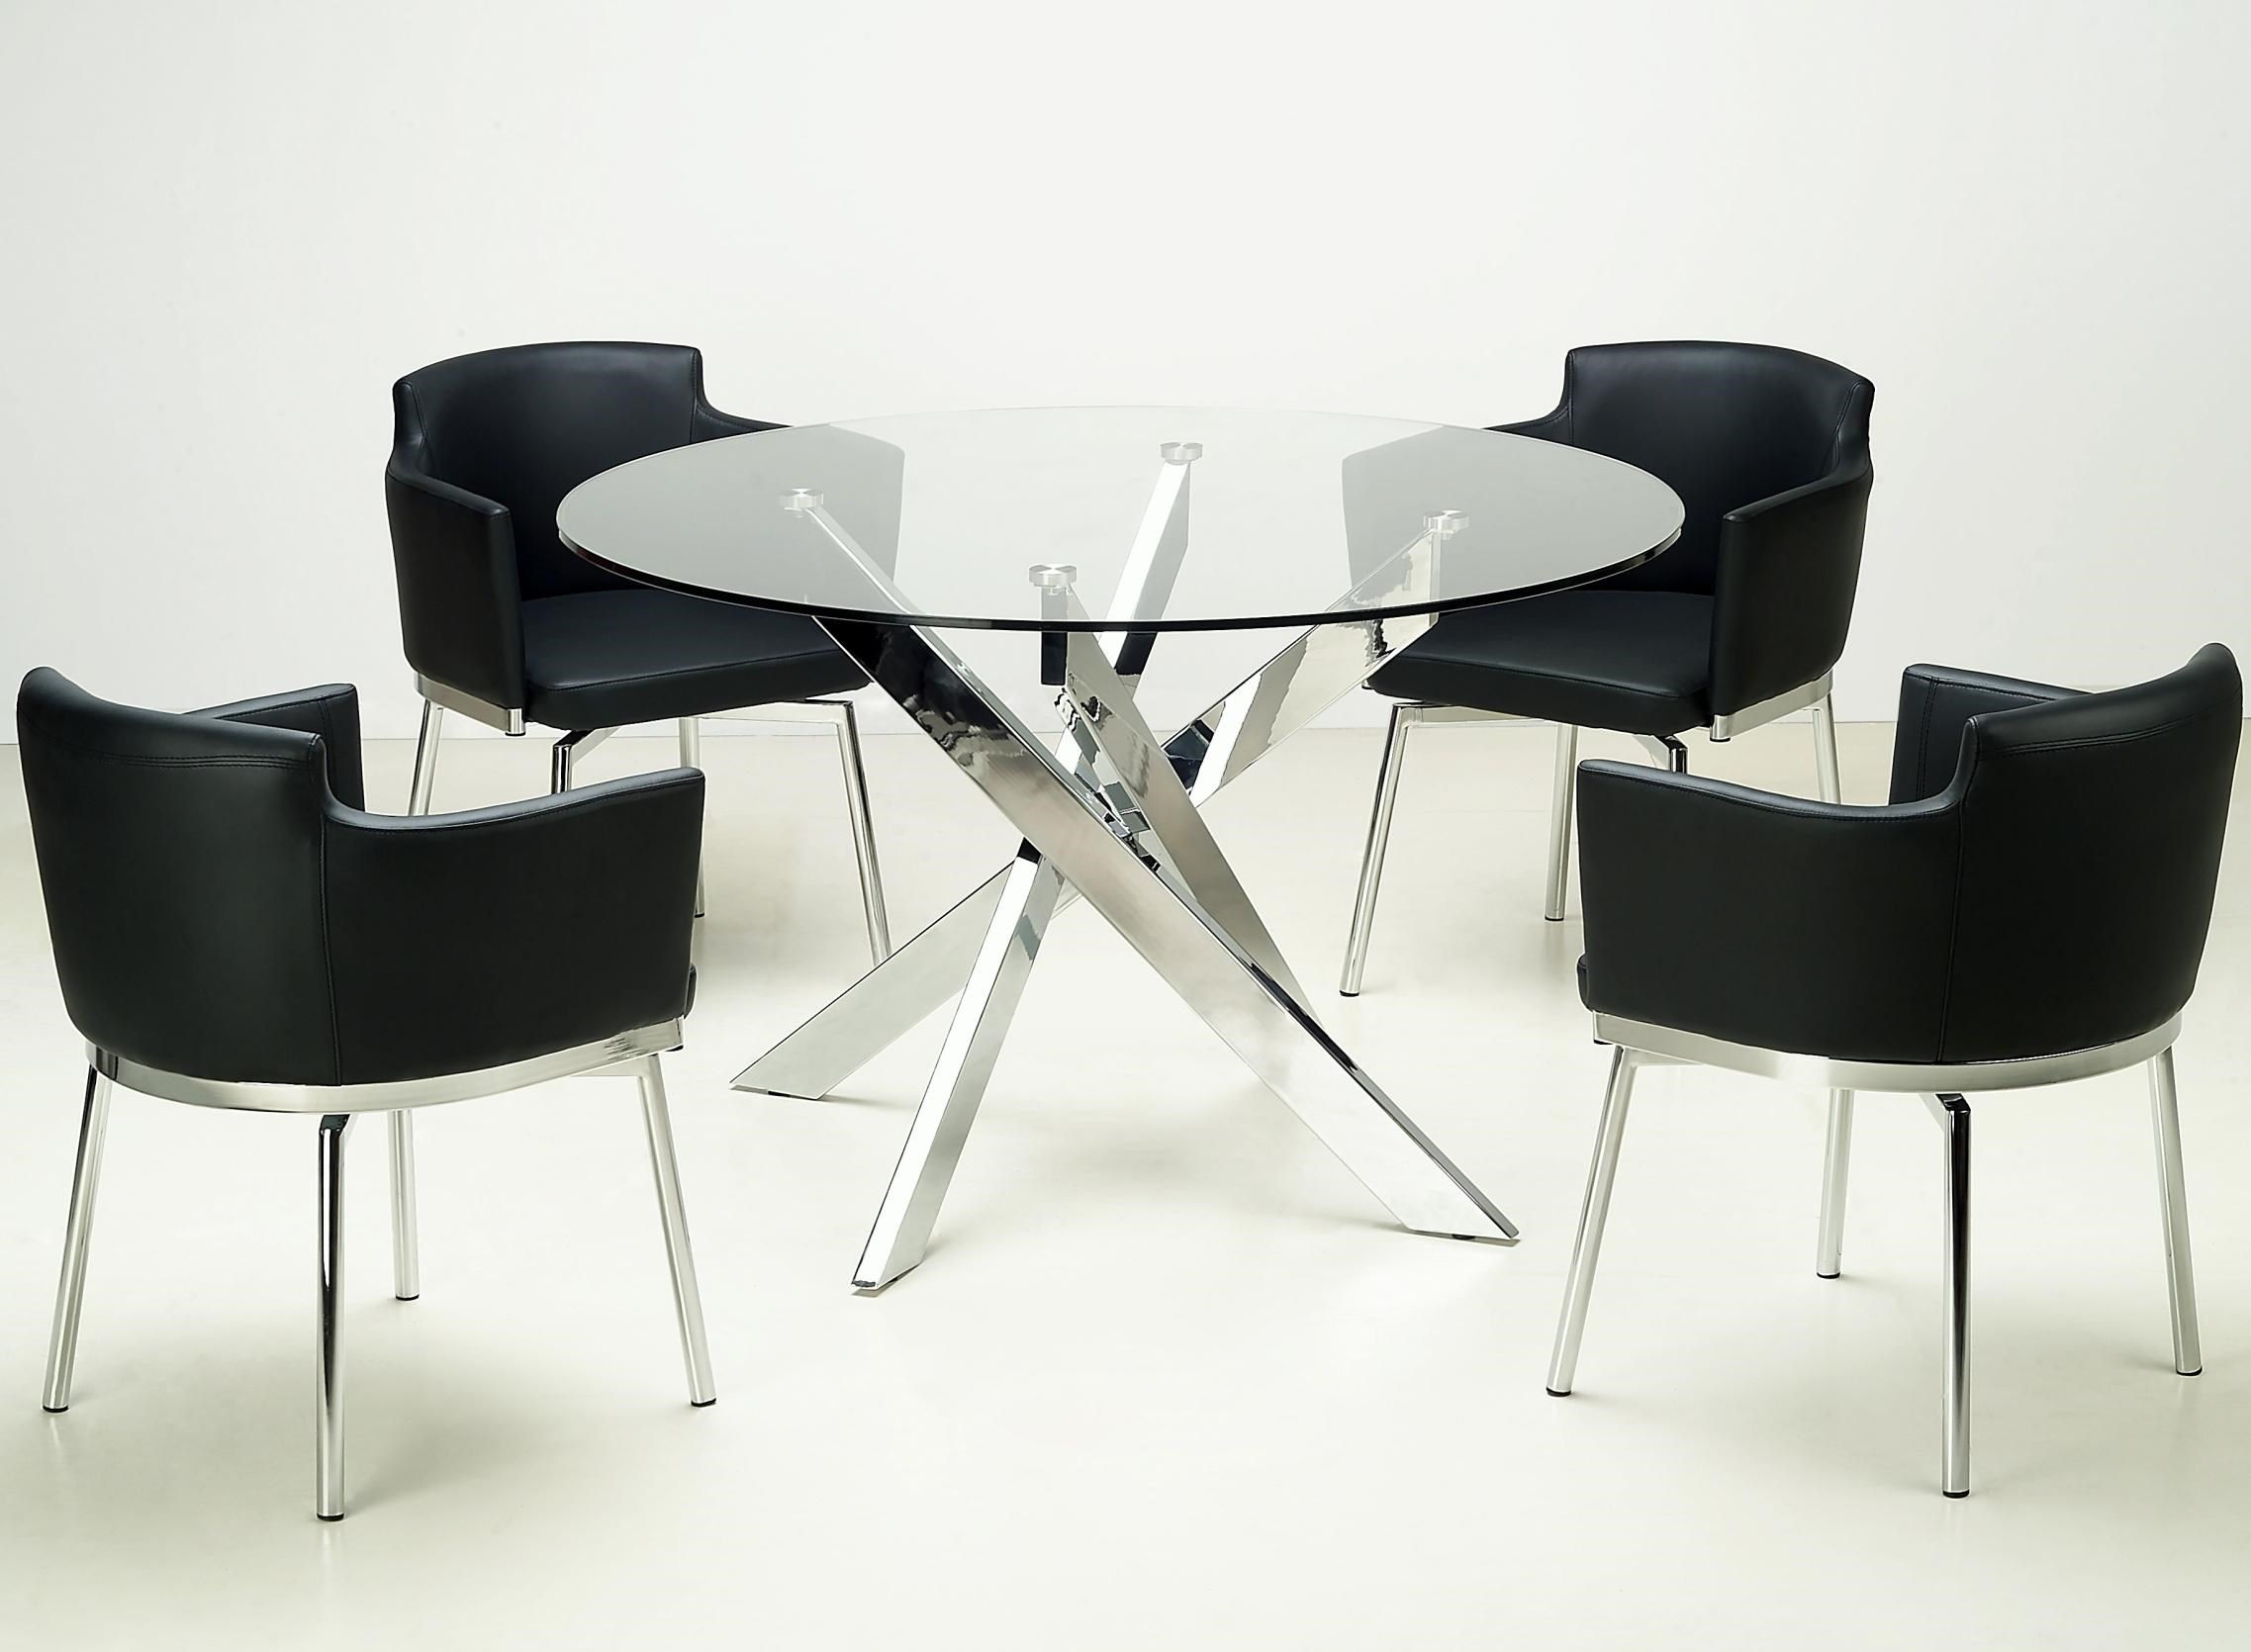 Charmant Chintaly Imports DustyTable U0026 Chair Set ...